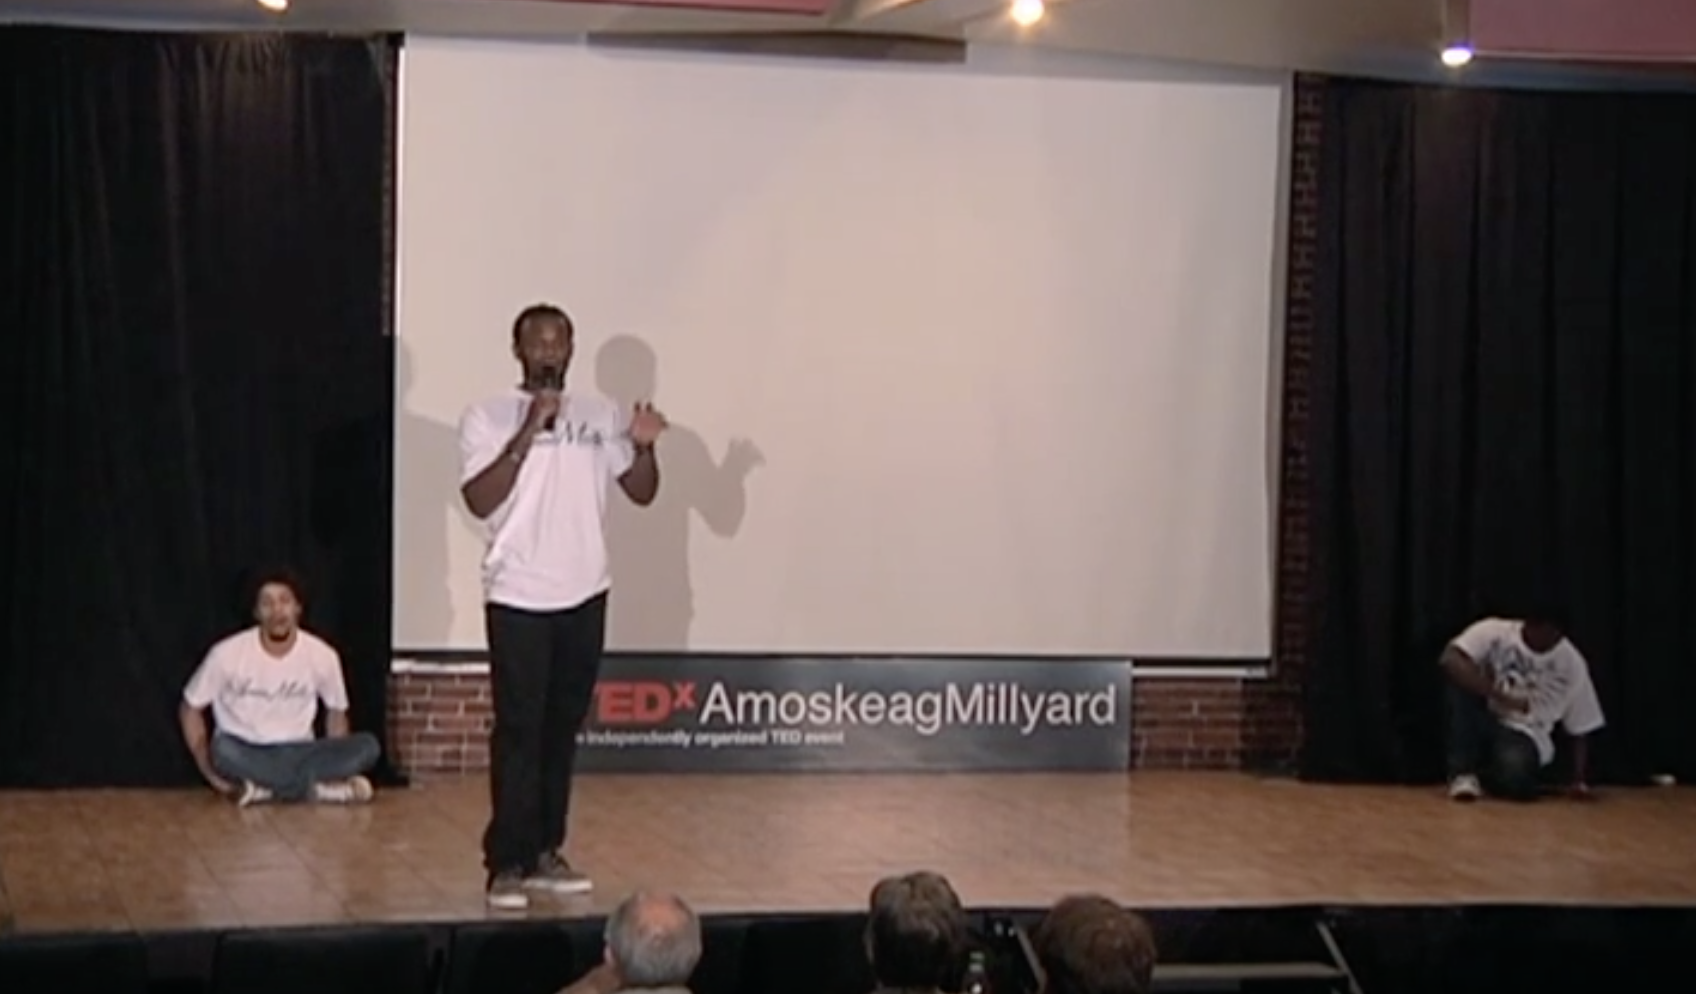 Deo presenting at Tedx AmoskeagMillyard 2011